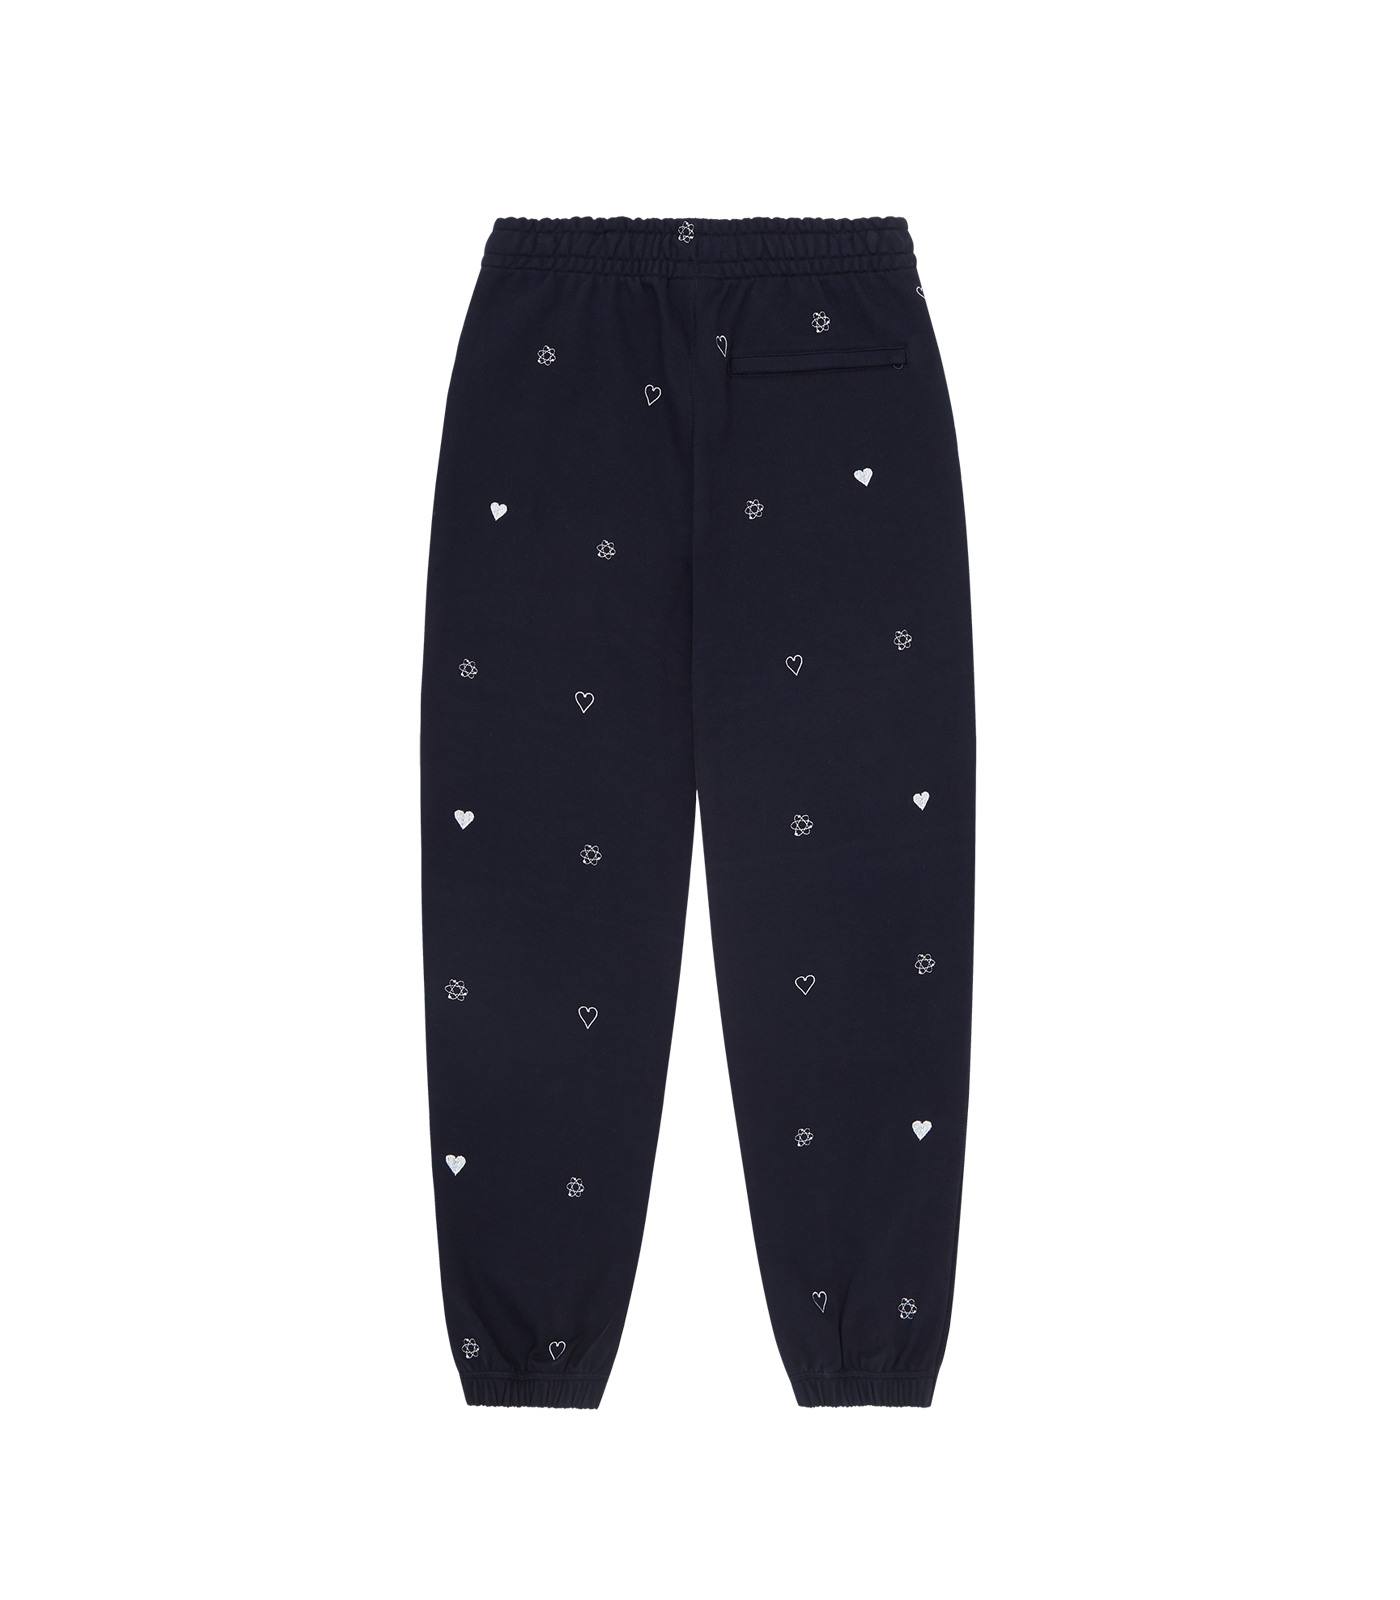 HEART & MIND MONOGRAM EMBROIDERED SWEAT PANT - NAVY